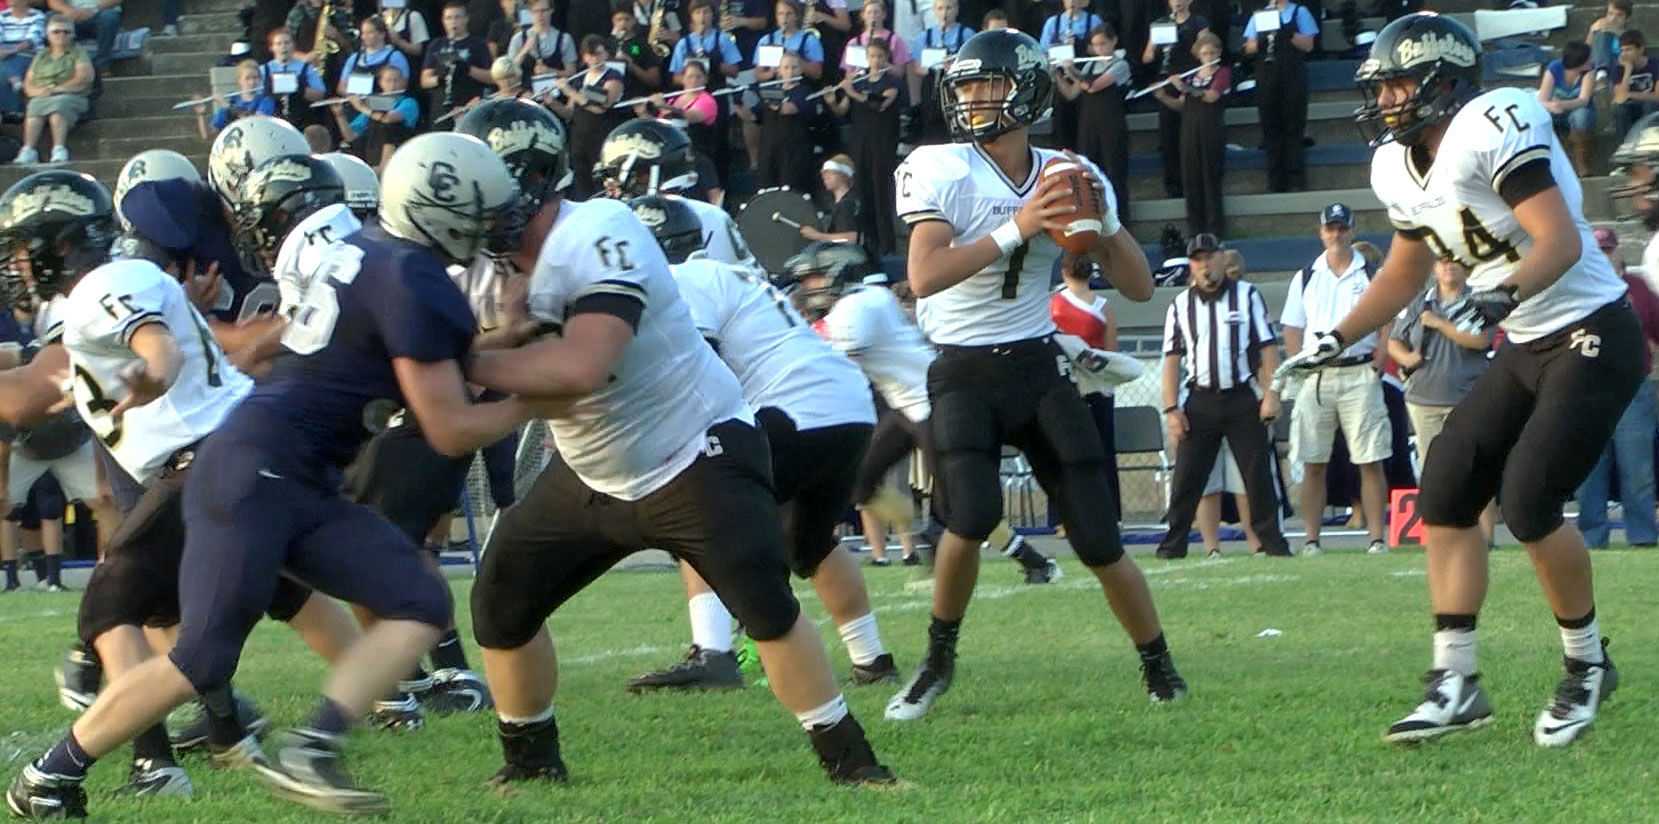 Buffaloes fall in opener